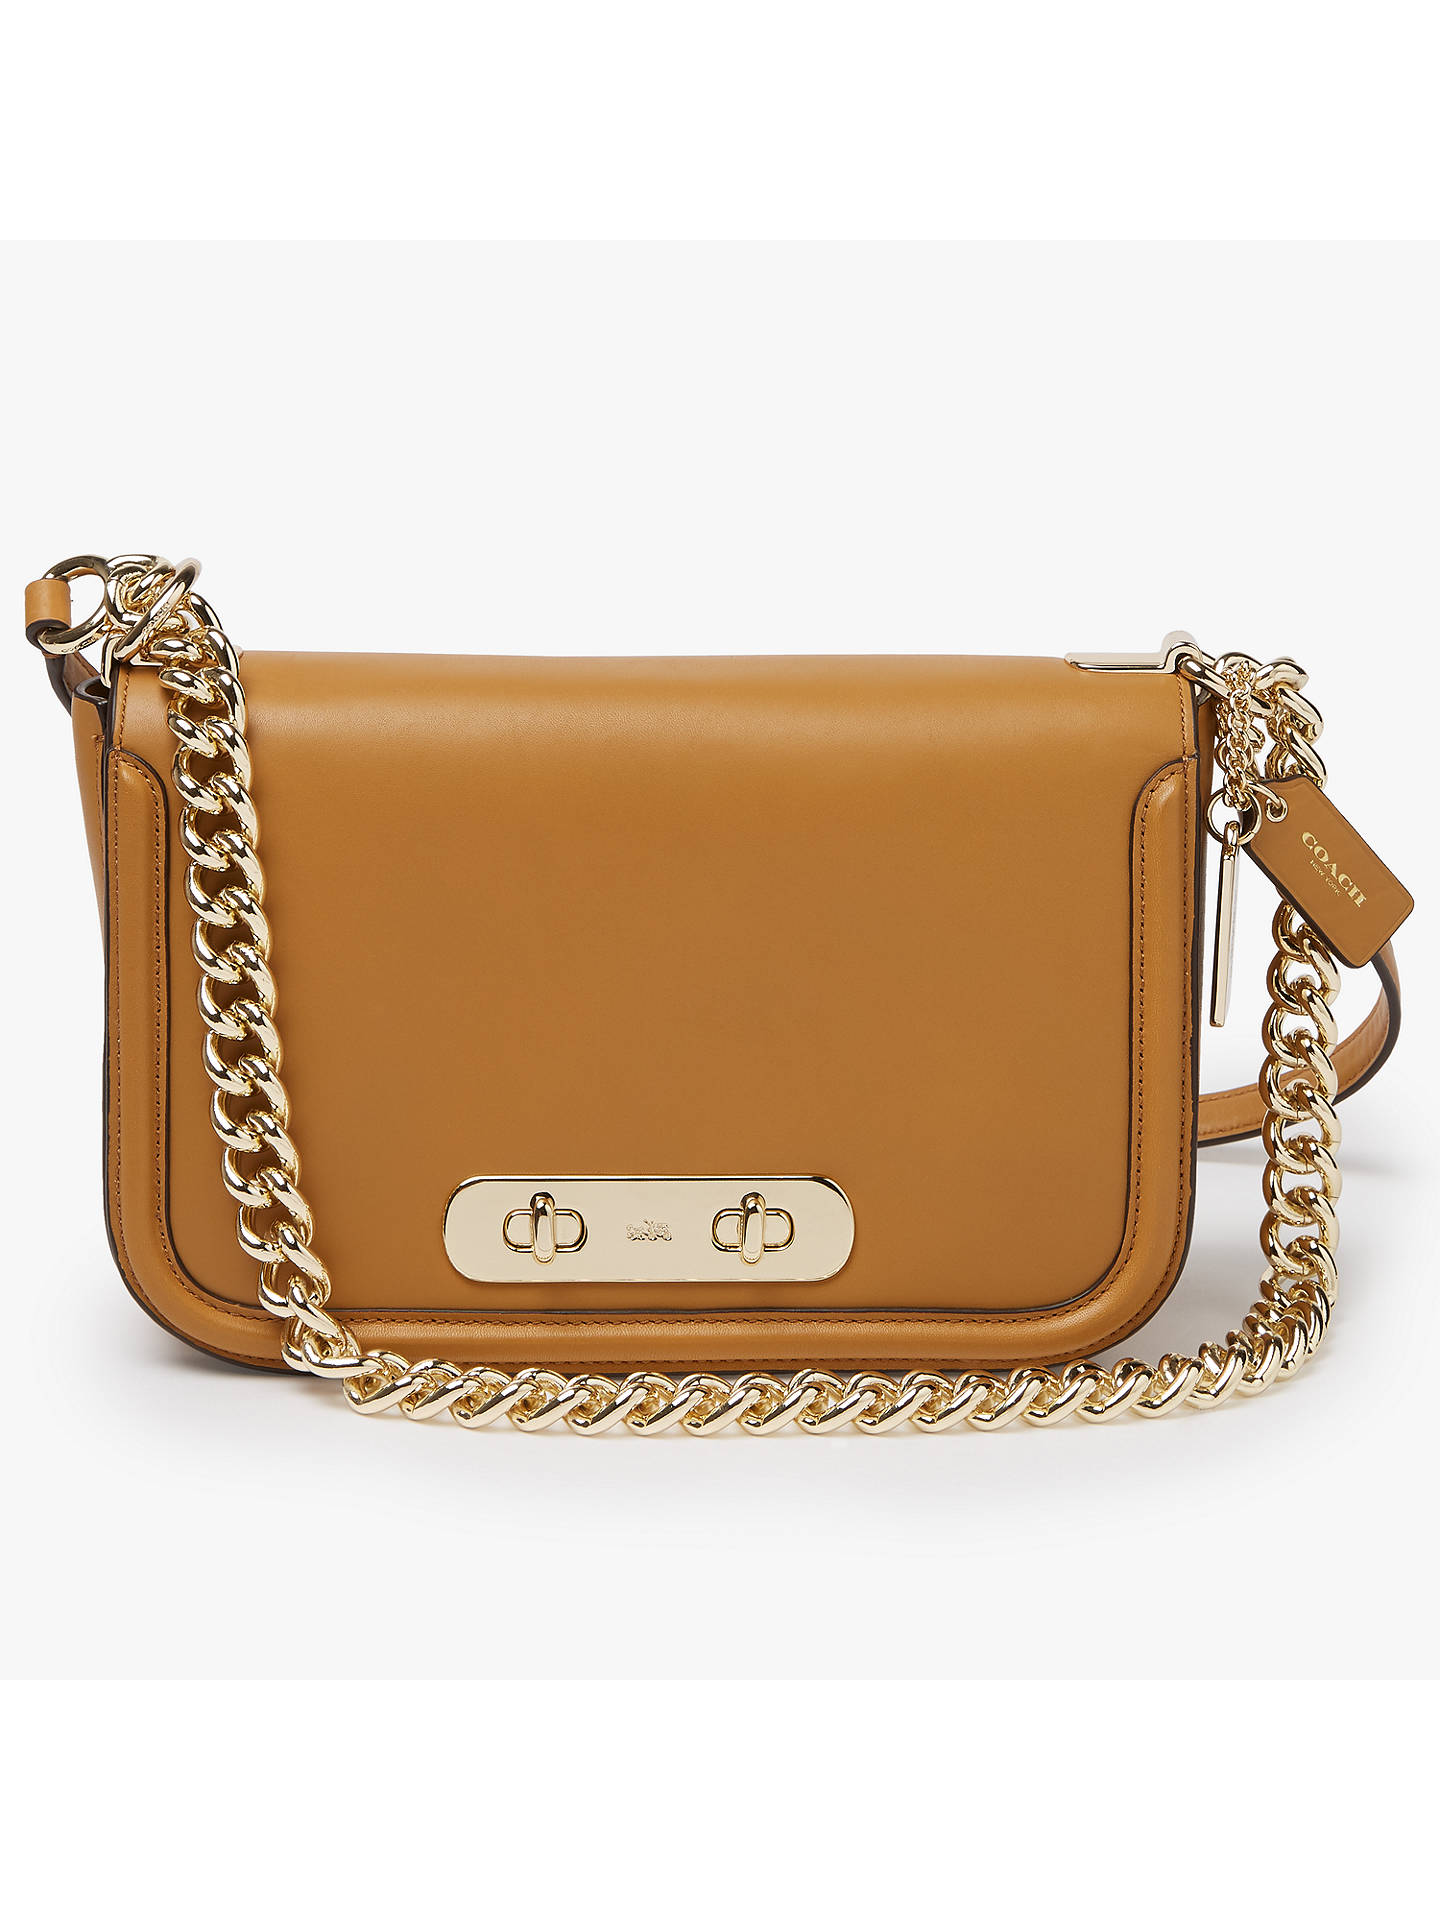 50a5b9d931 ... official buycoach swagger leather shoulder bag caramel online at  johnlewis 0a5fb 05dfa